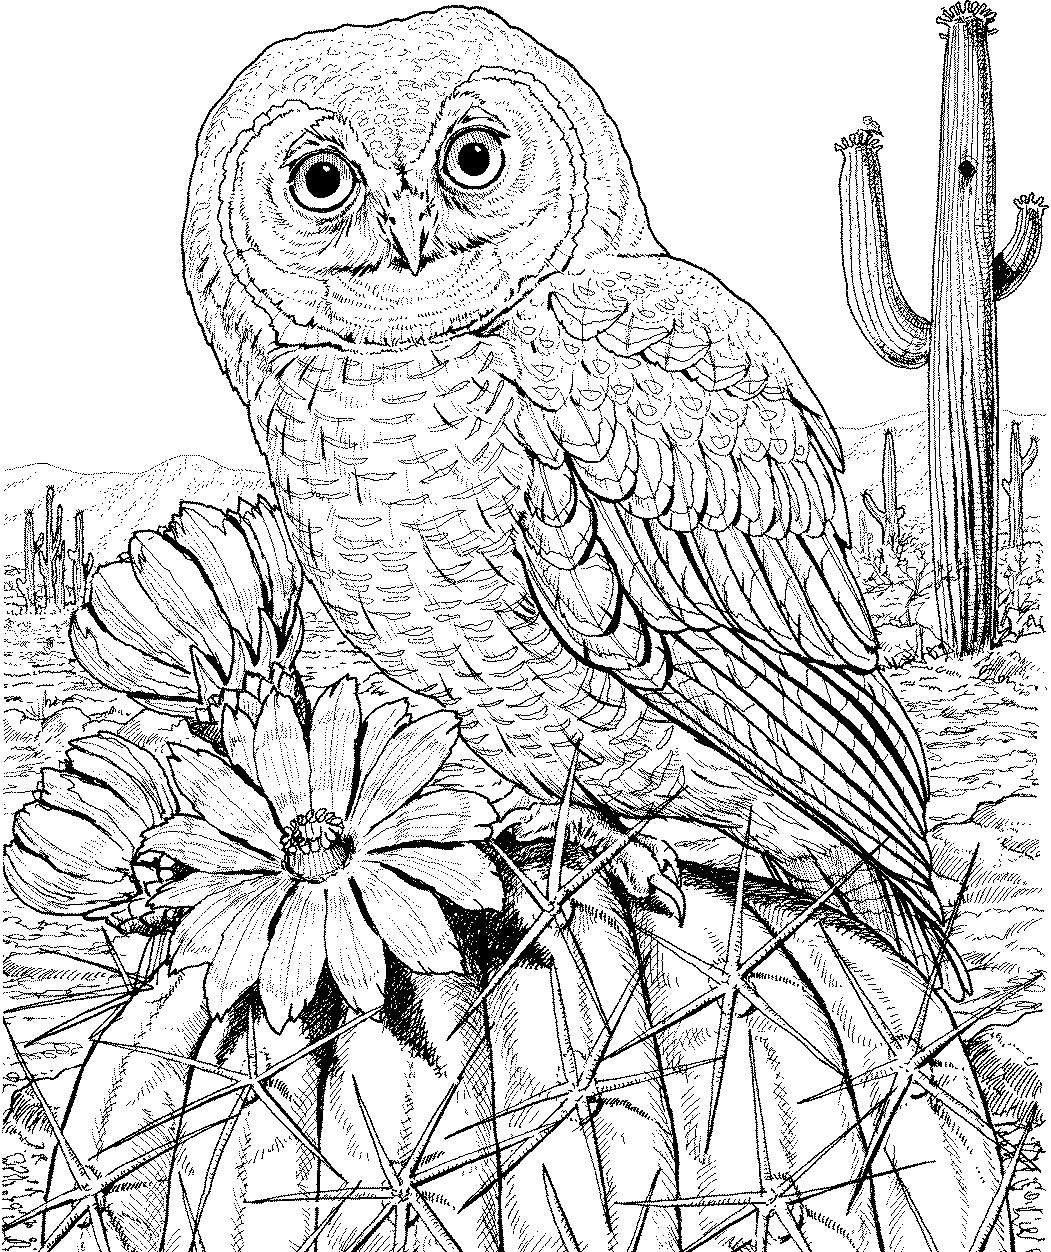 10 Difficult Owl Coloring Page For Adults Owl Coloring Pages Bird Coloring Pages Animal Coloring Pages